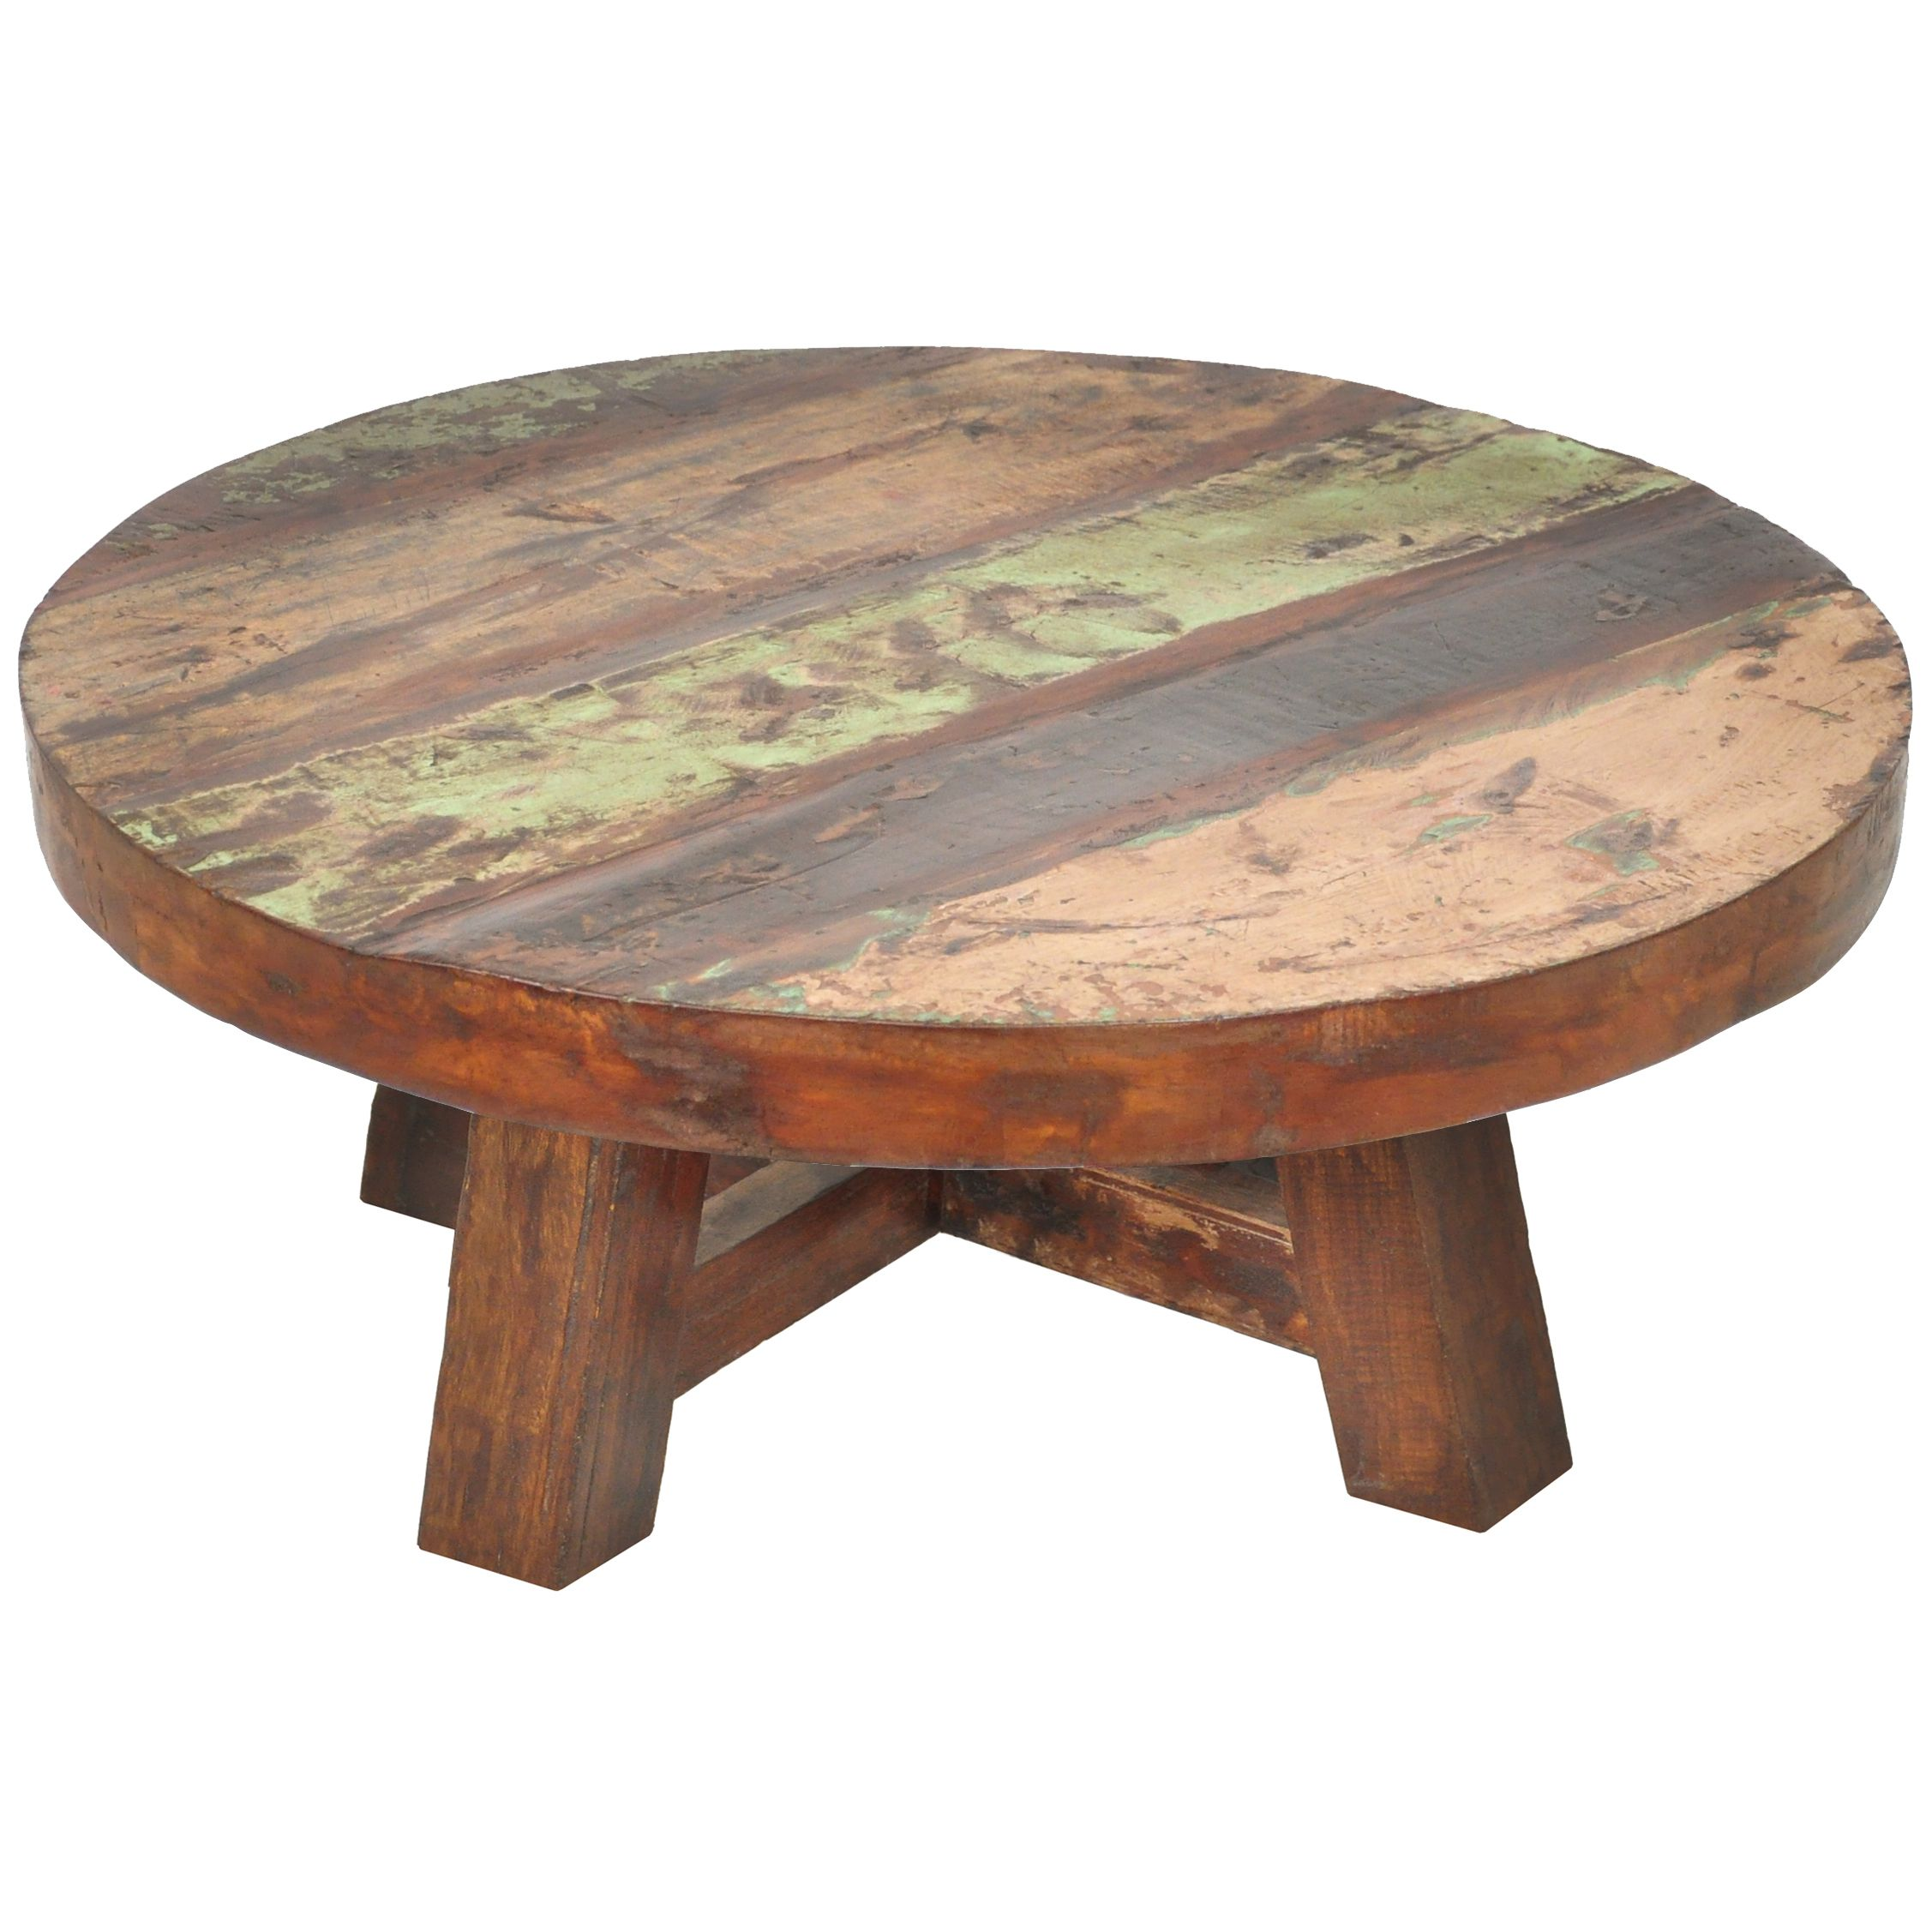 Fascinating round wood coffee table for home bar